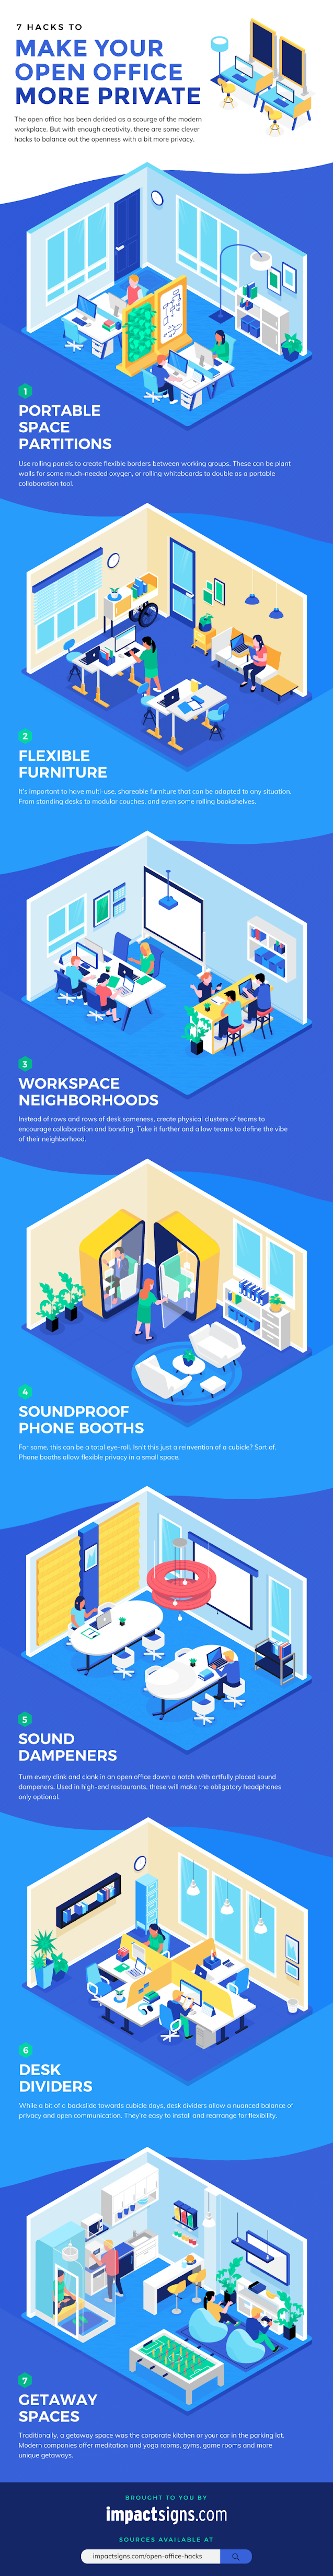 7 Hacks to Make Your Open Office More Private #infographic #Office #infographics #Office Hacks